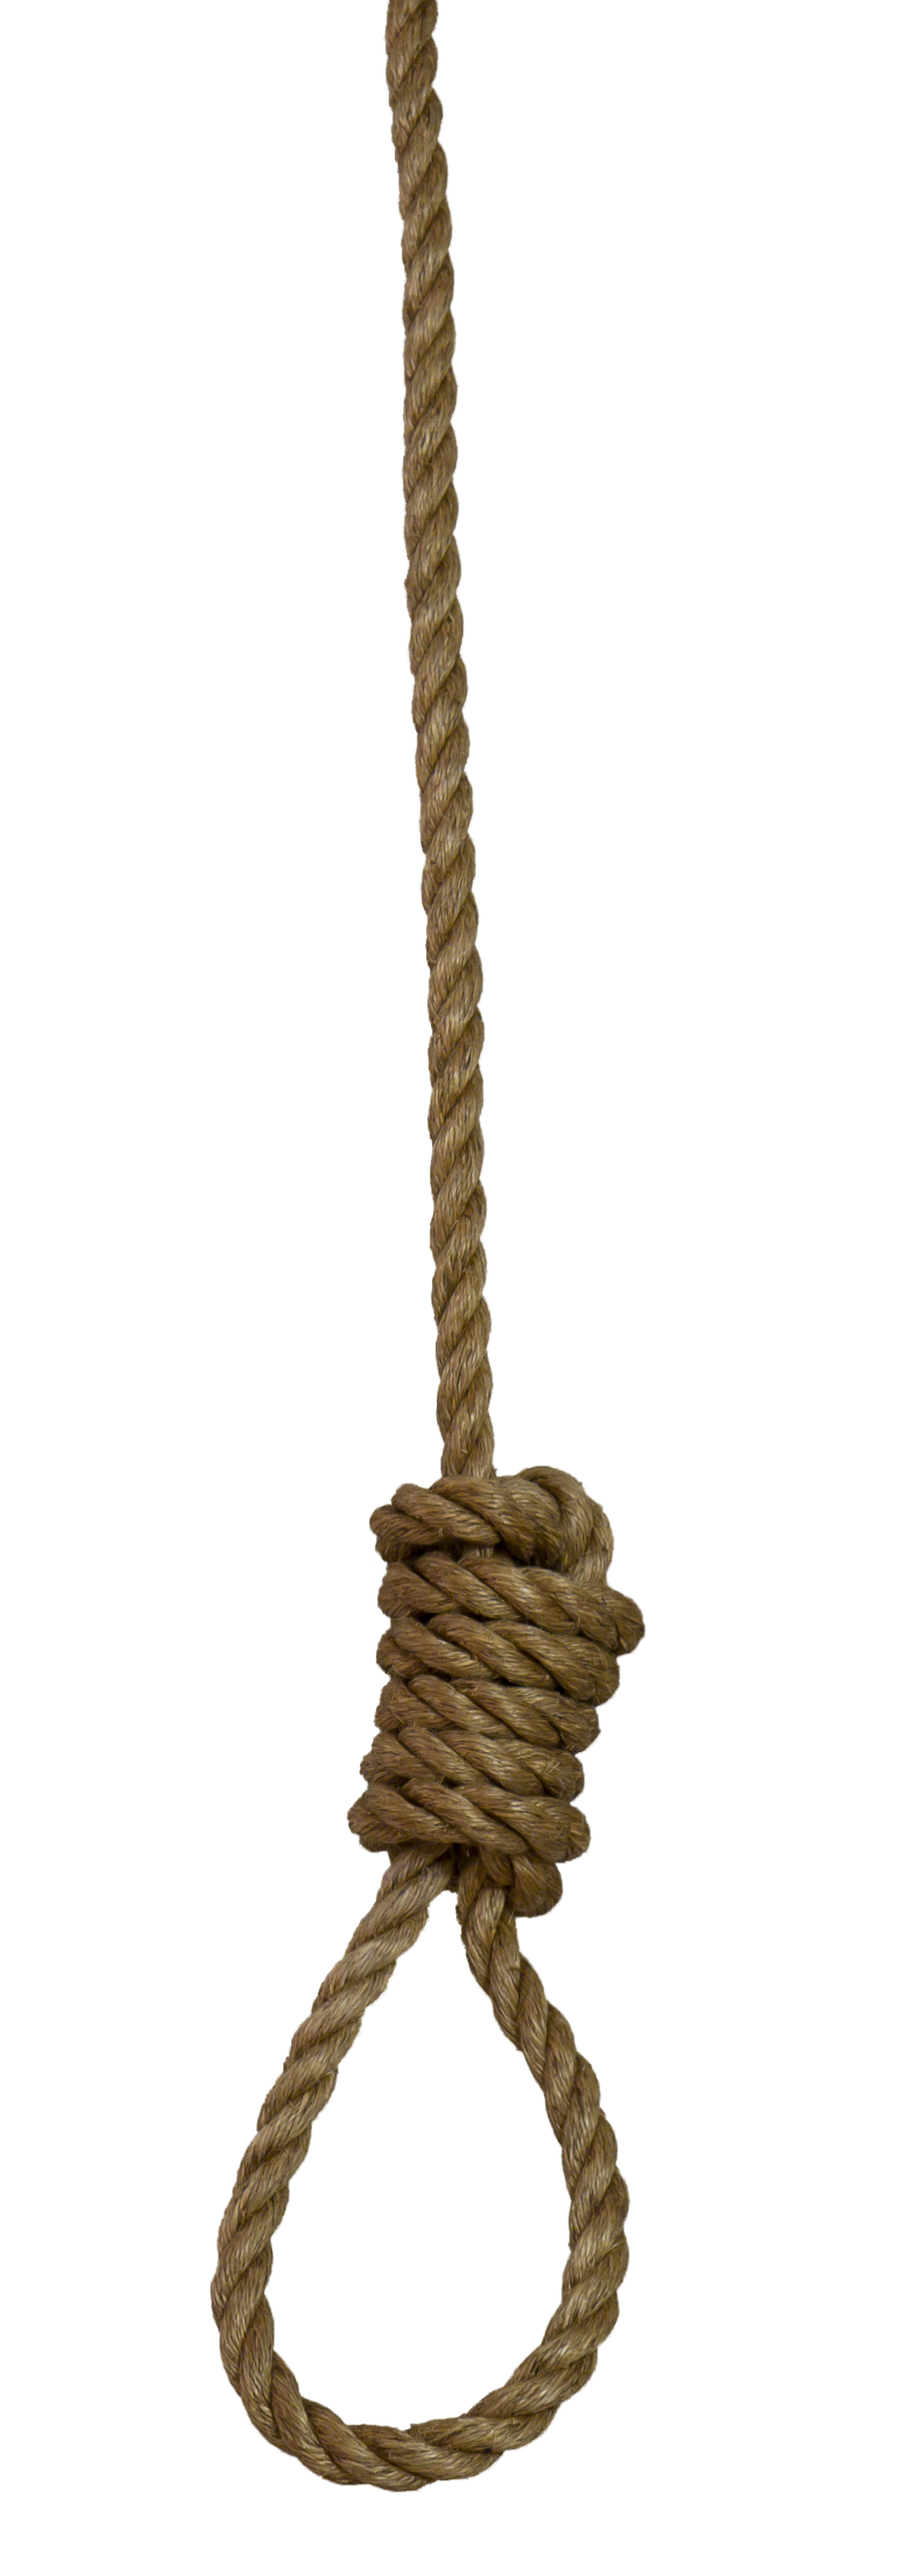 Gallery images and information: Rope Png